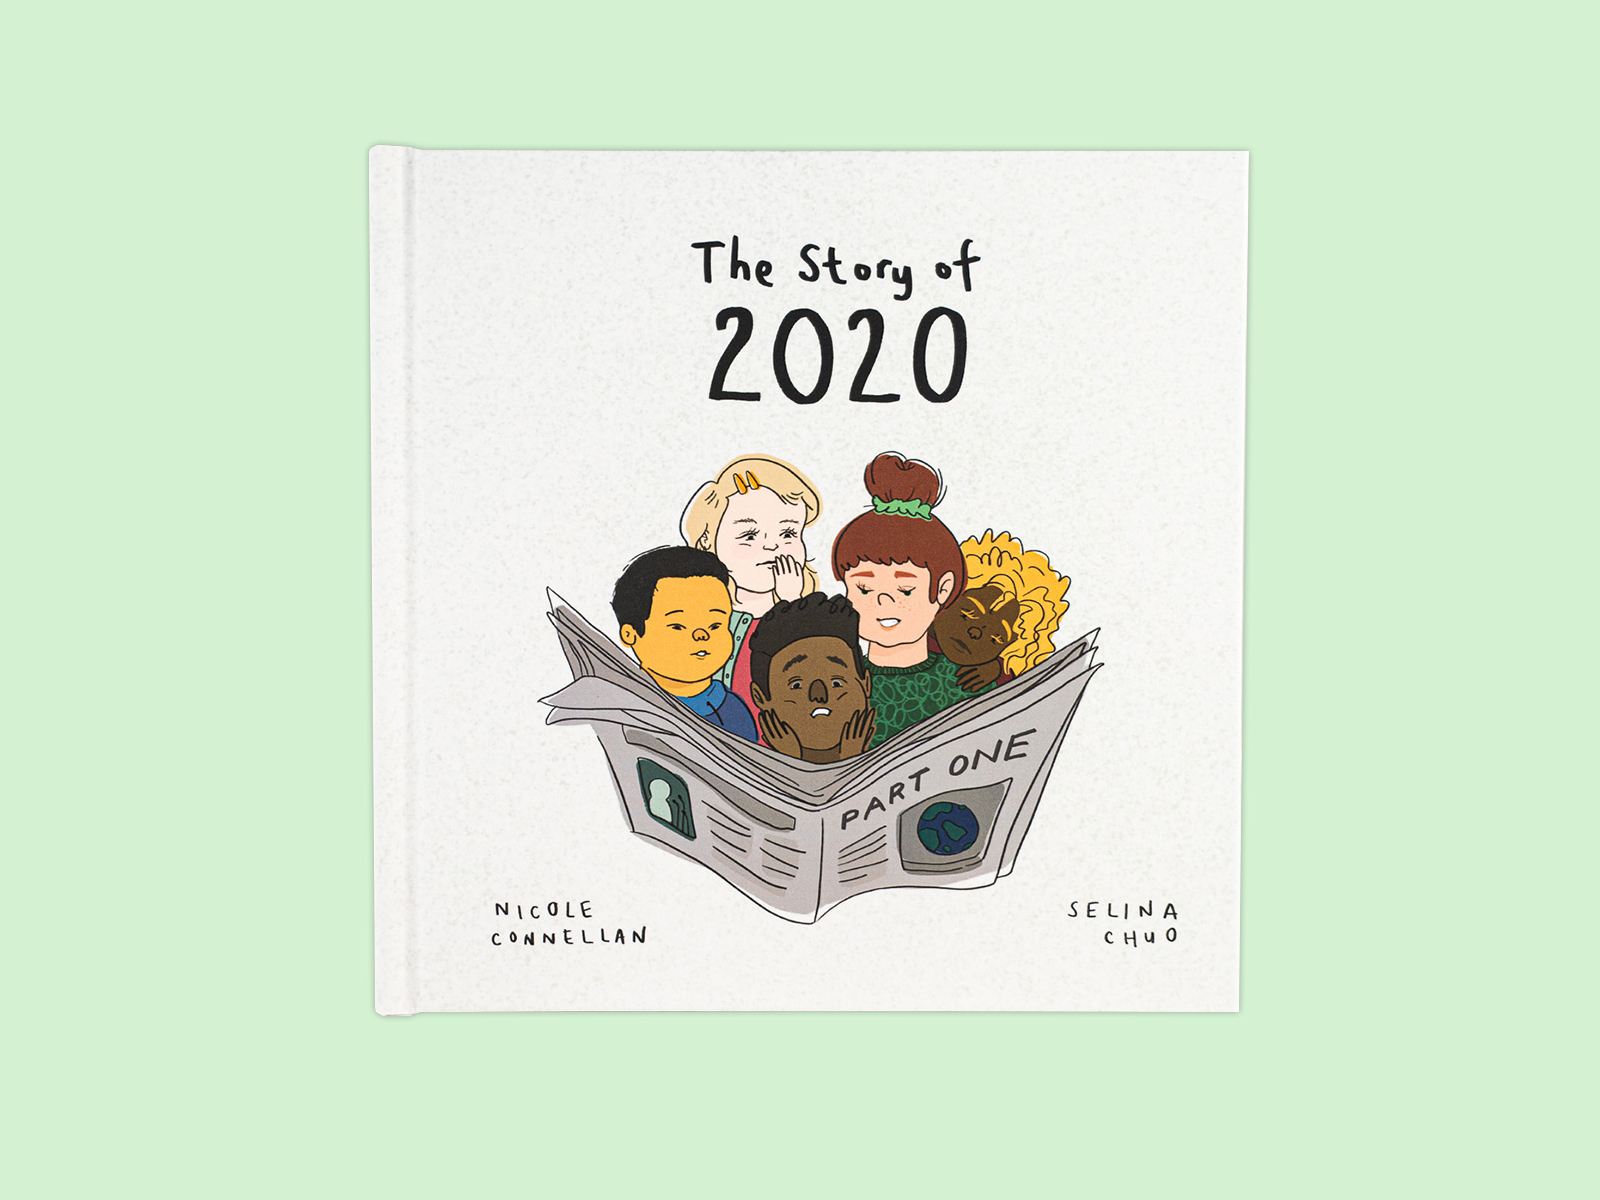 The Story of 2020